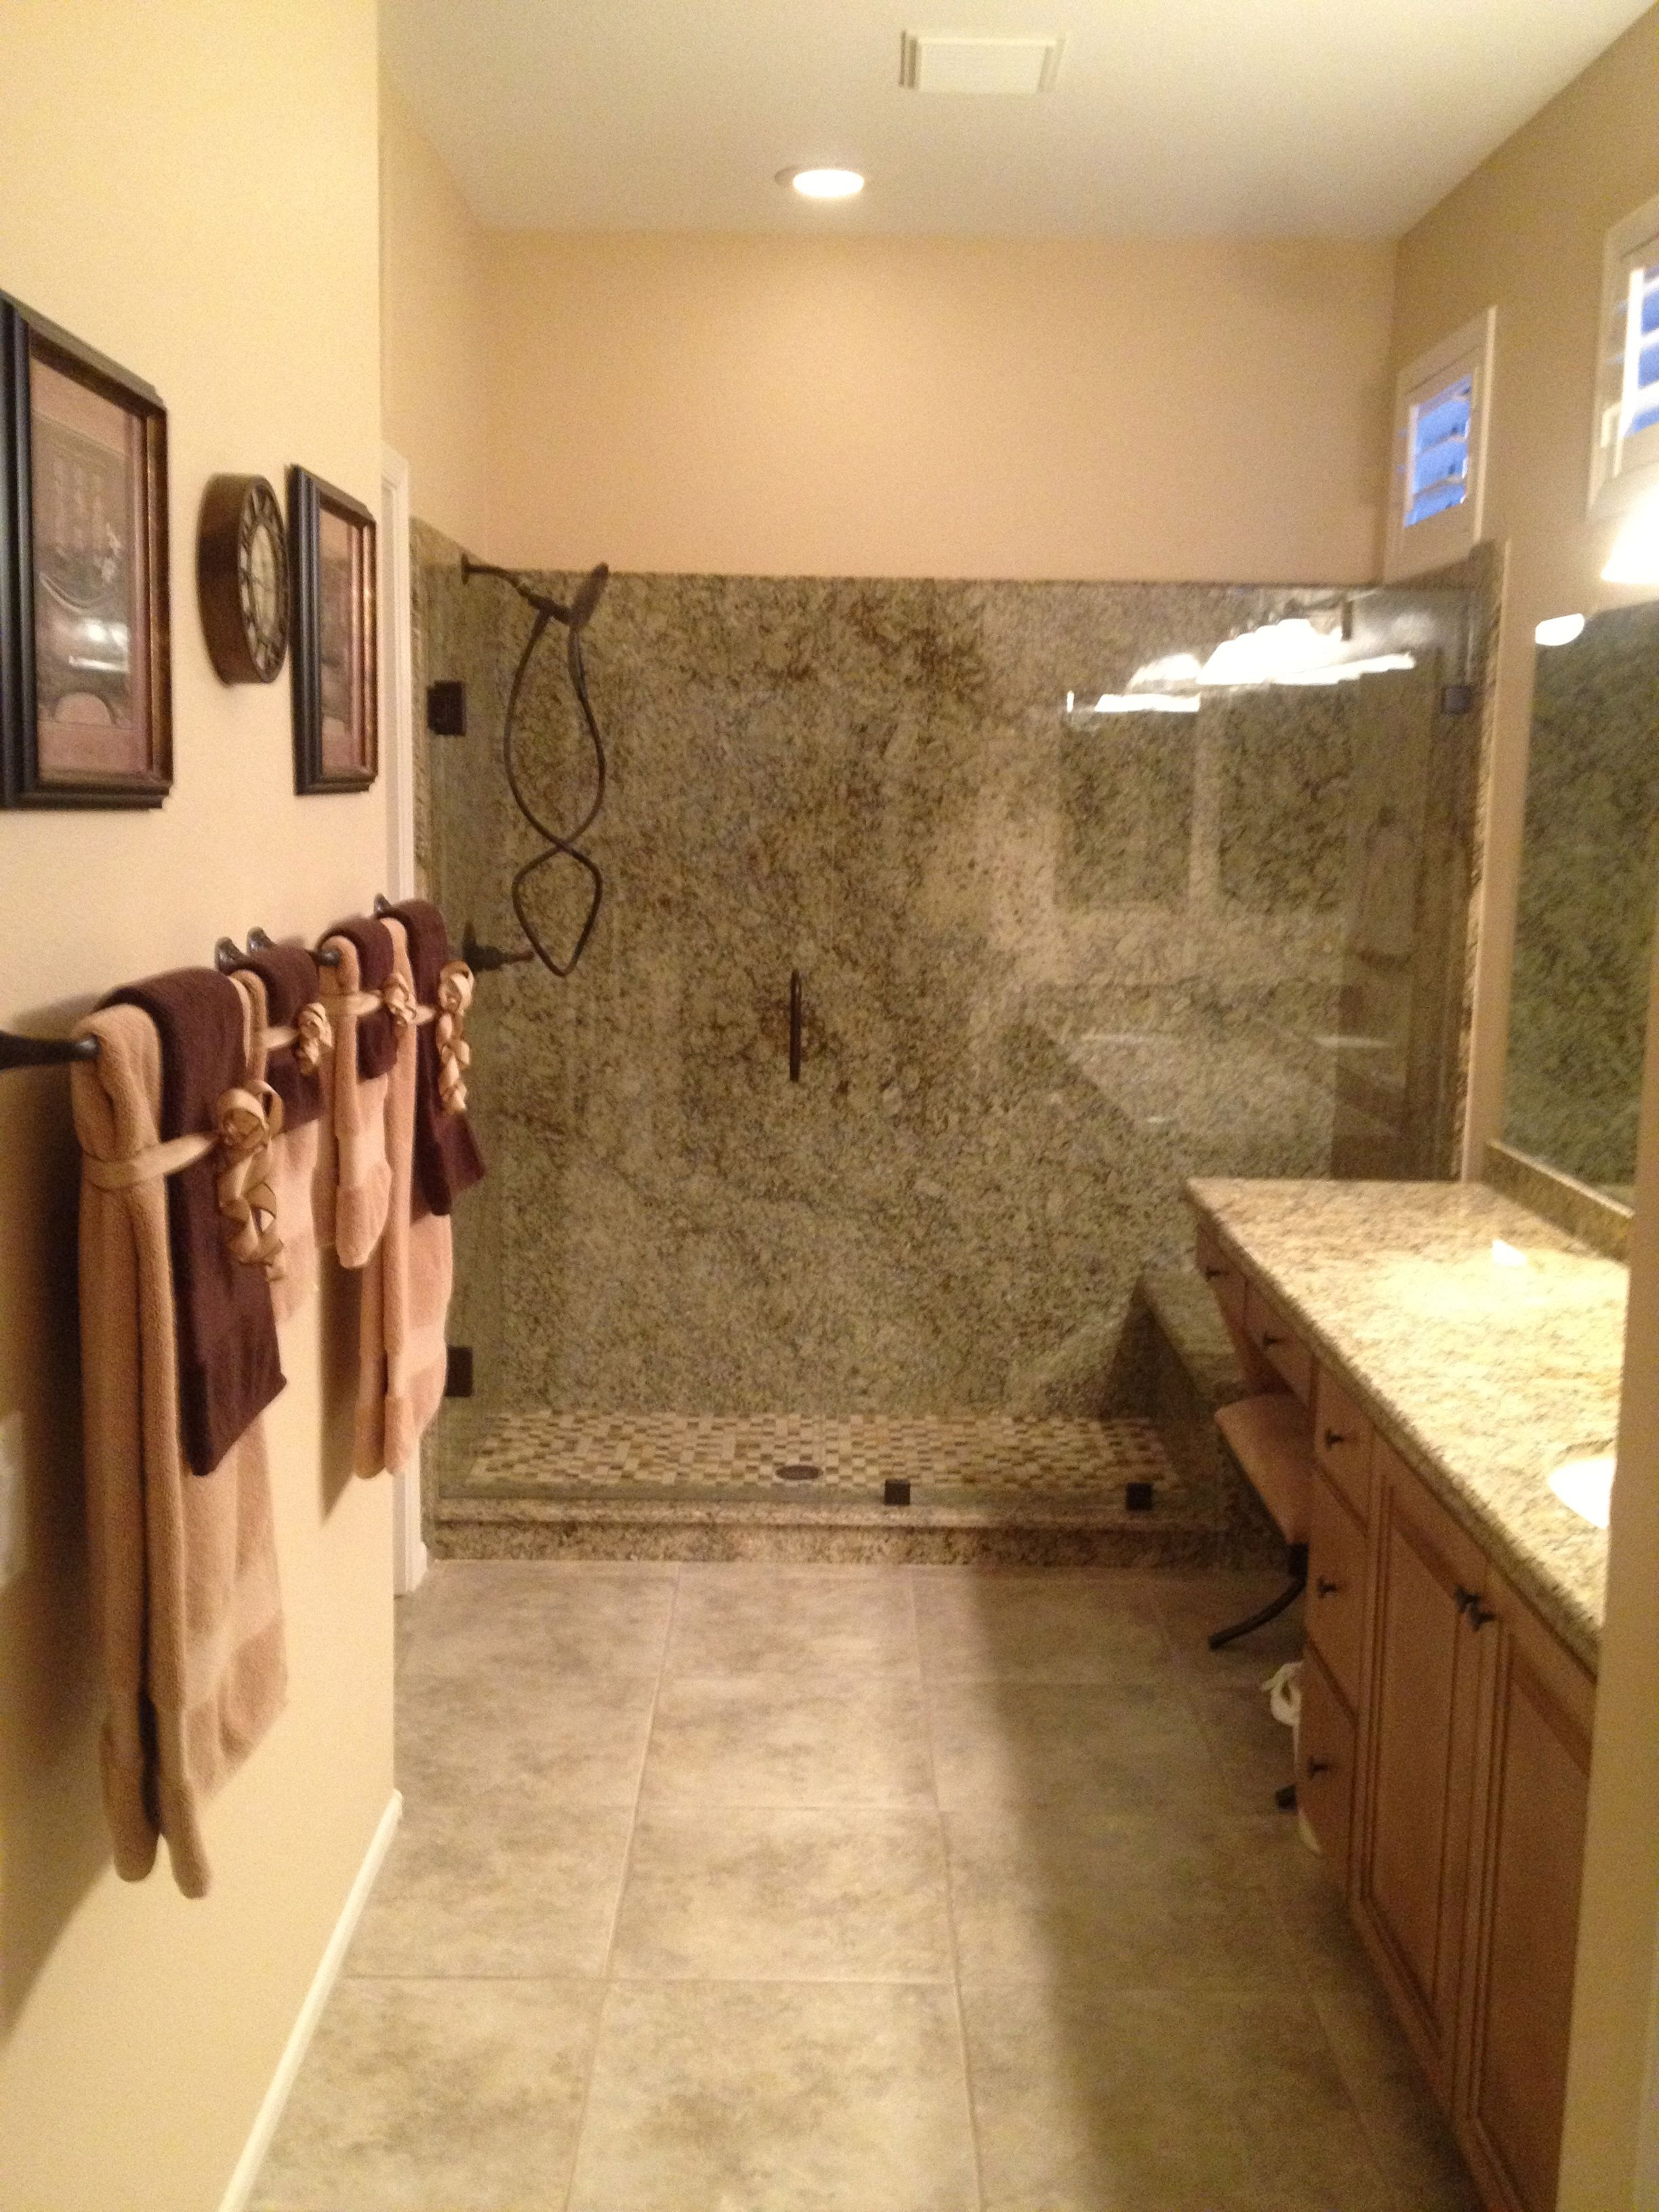 Remodel Your Bathroom As This One With Vanity Granite Tops, And Granite Shower  Walls As